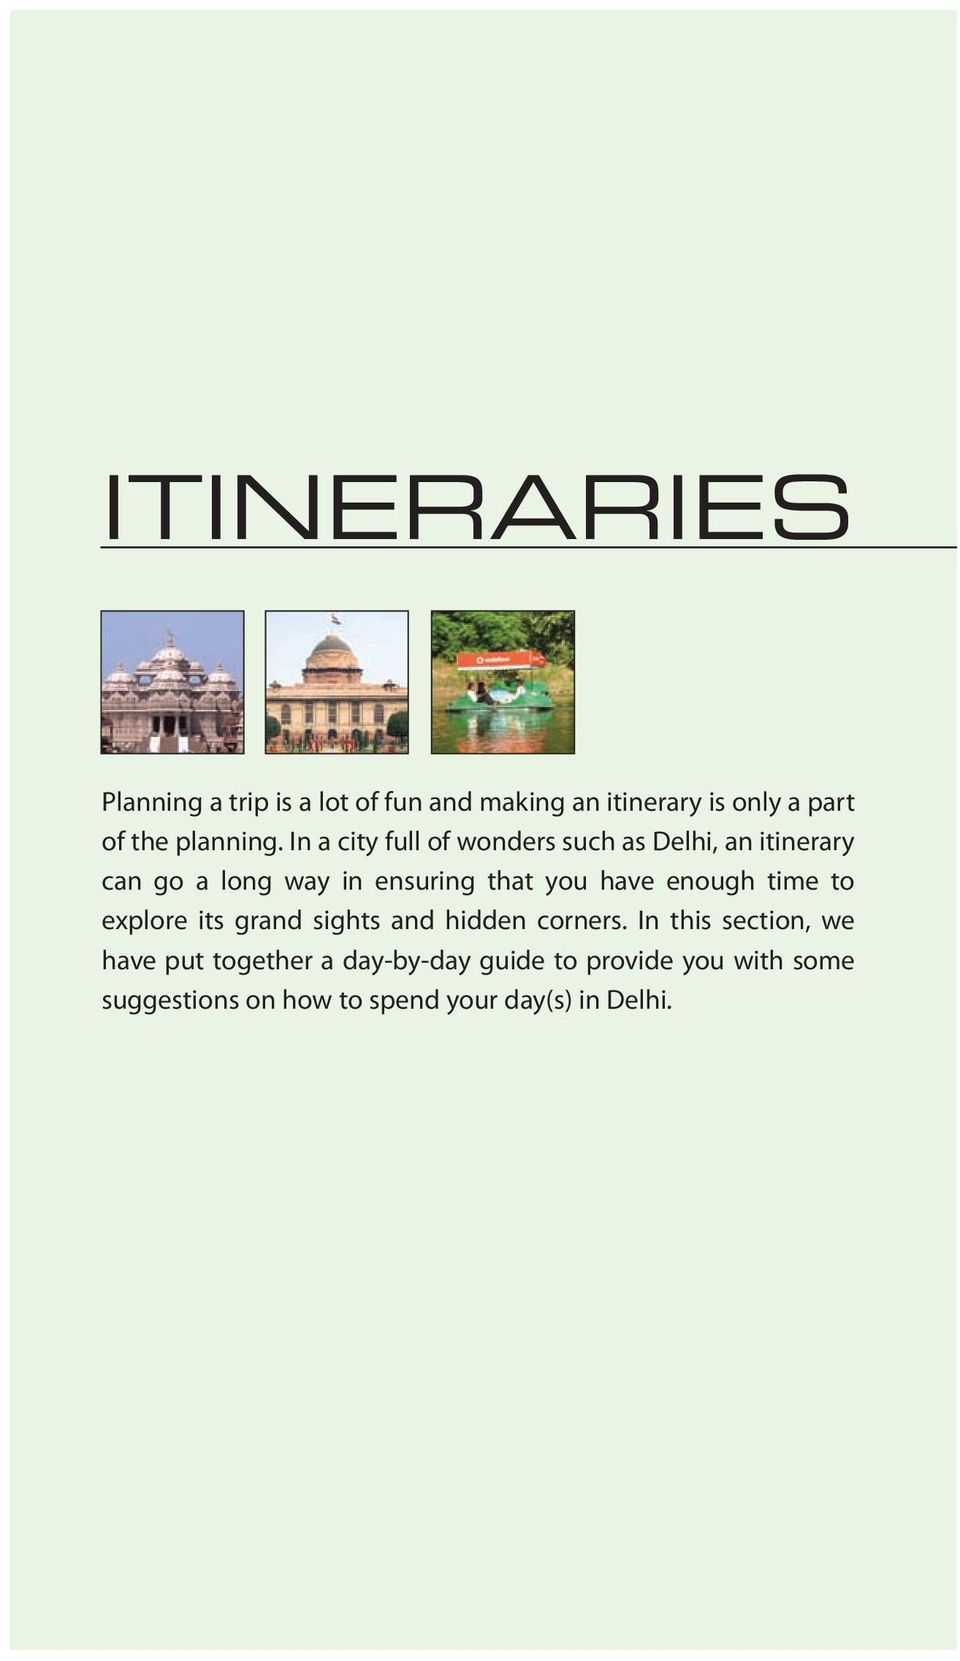 In a city full of wonders such as Delhi, an itinerary can go a long way in ensuring that you have